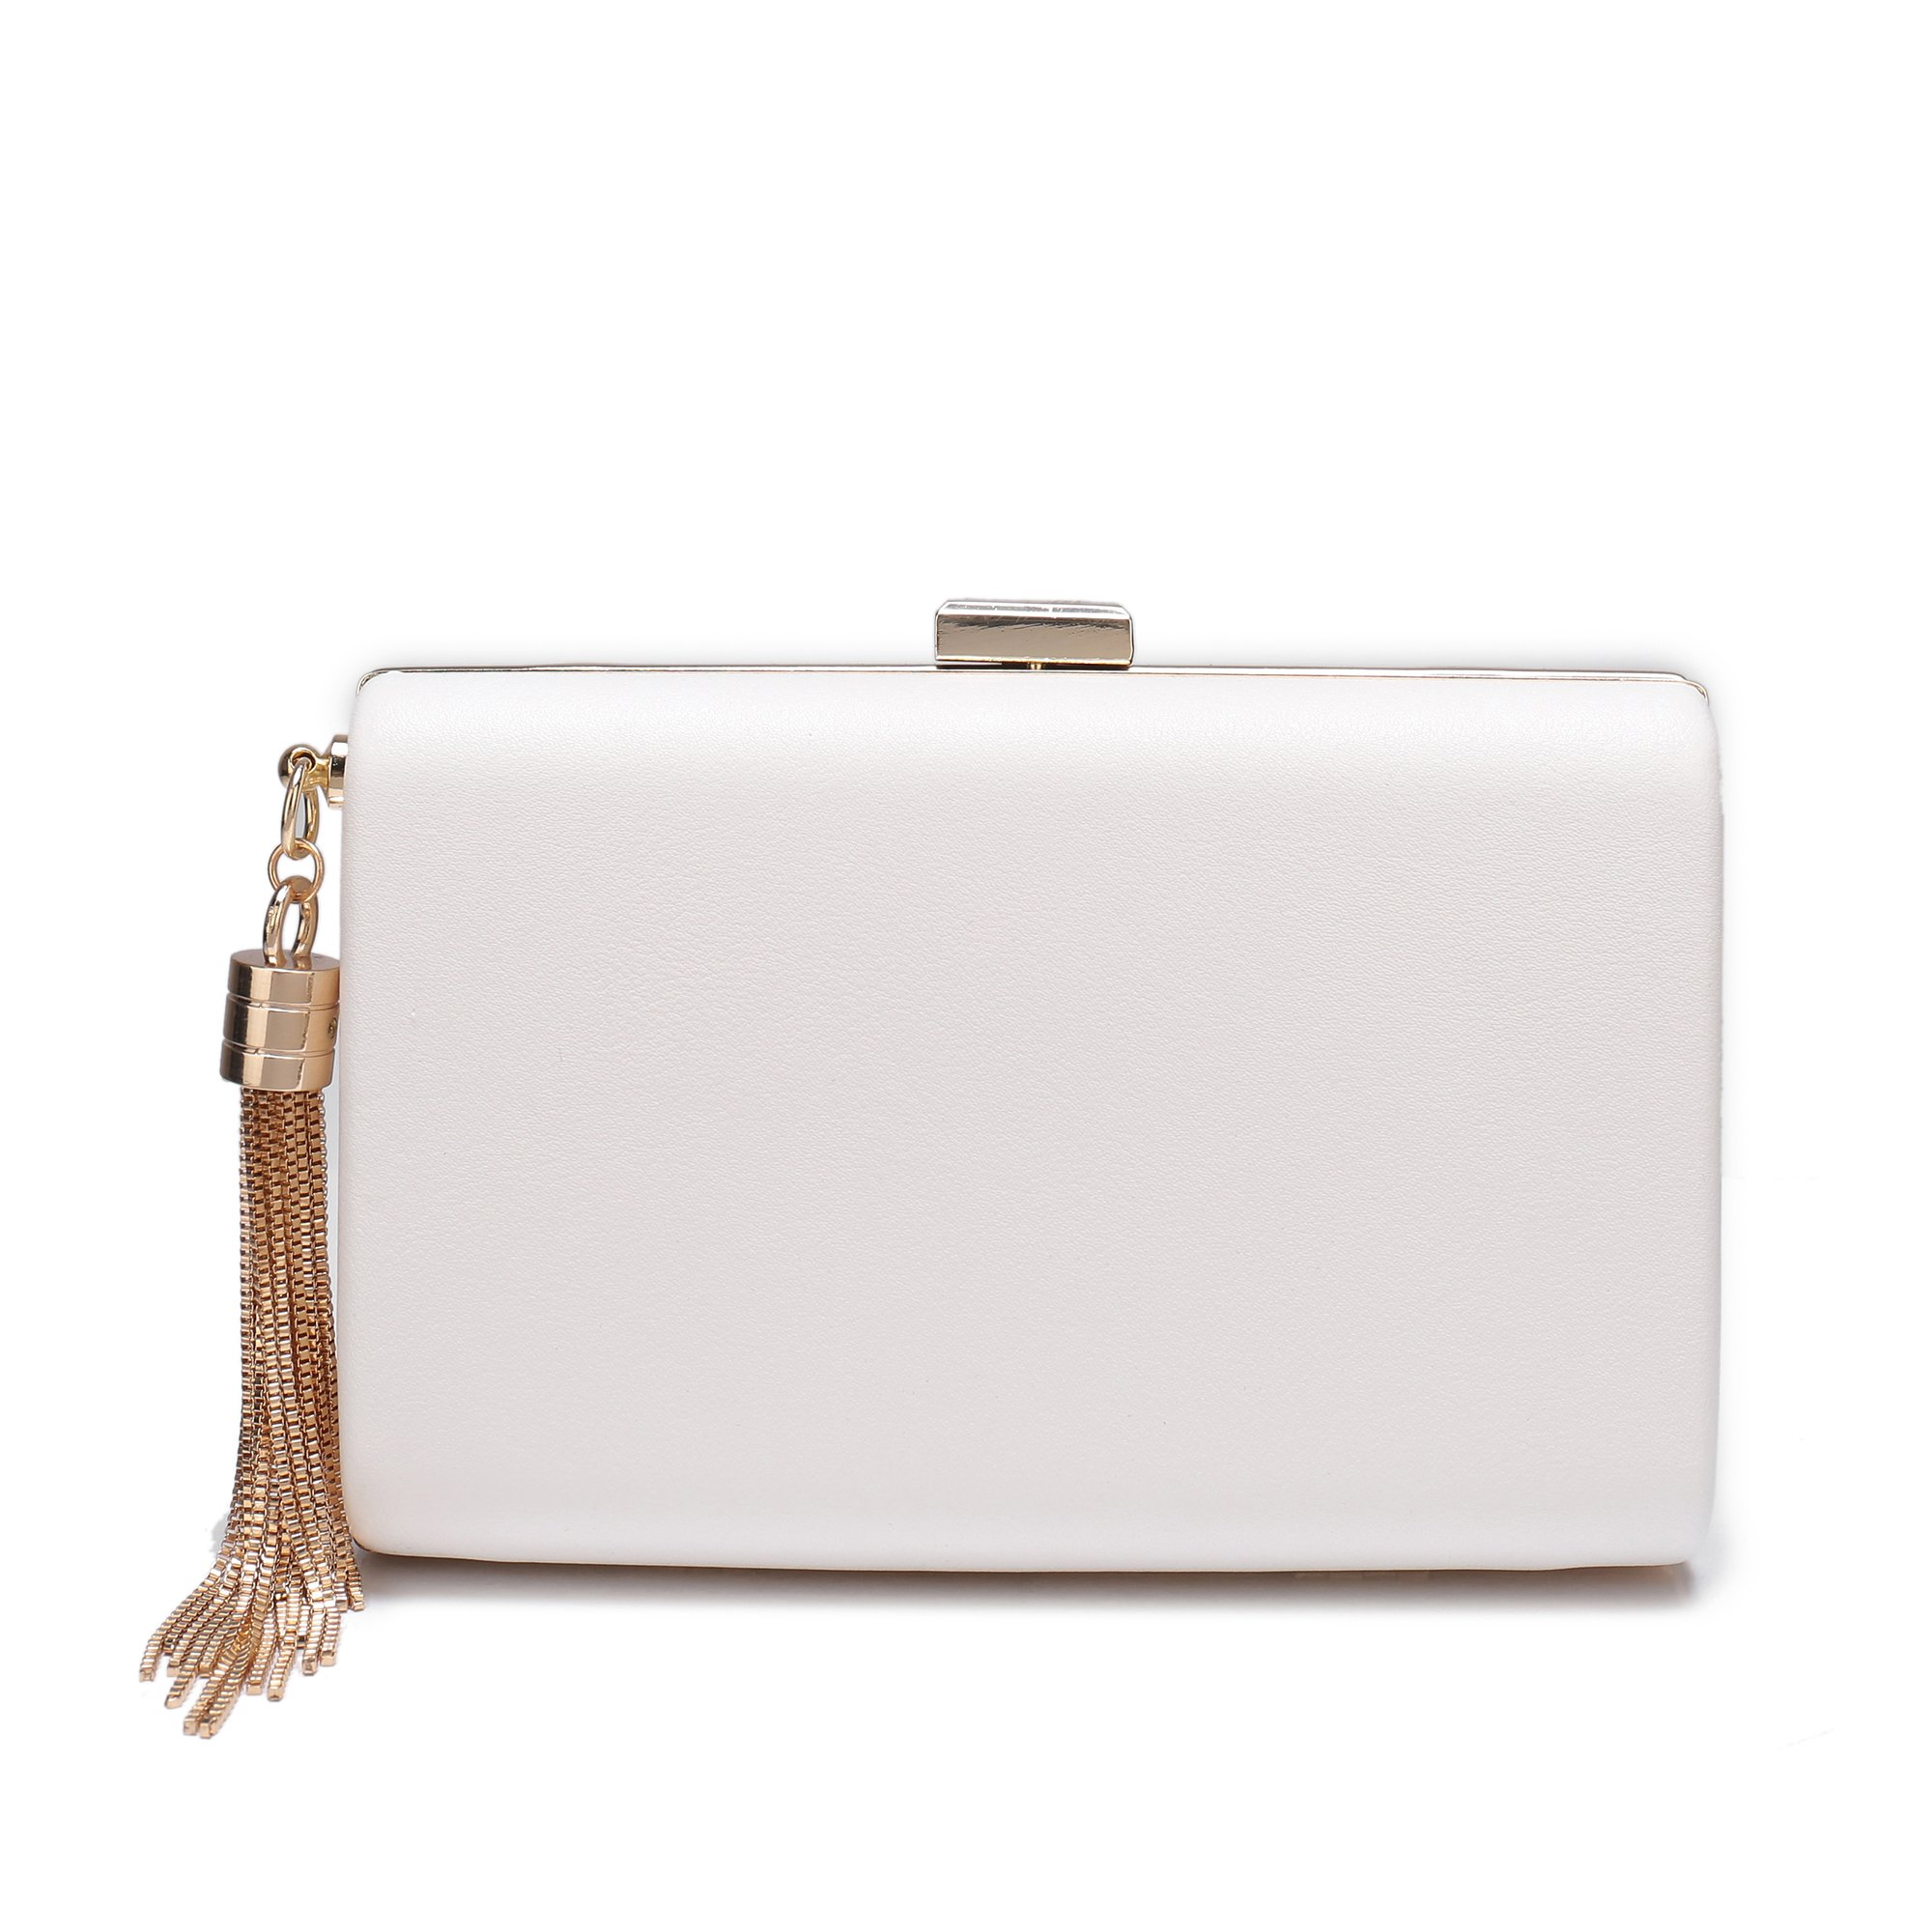 Leather Evening Clutch Handbag Clutch Purse Prom For Cocktail Wedding Women White